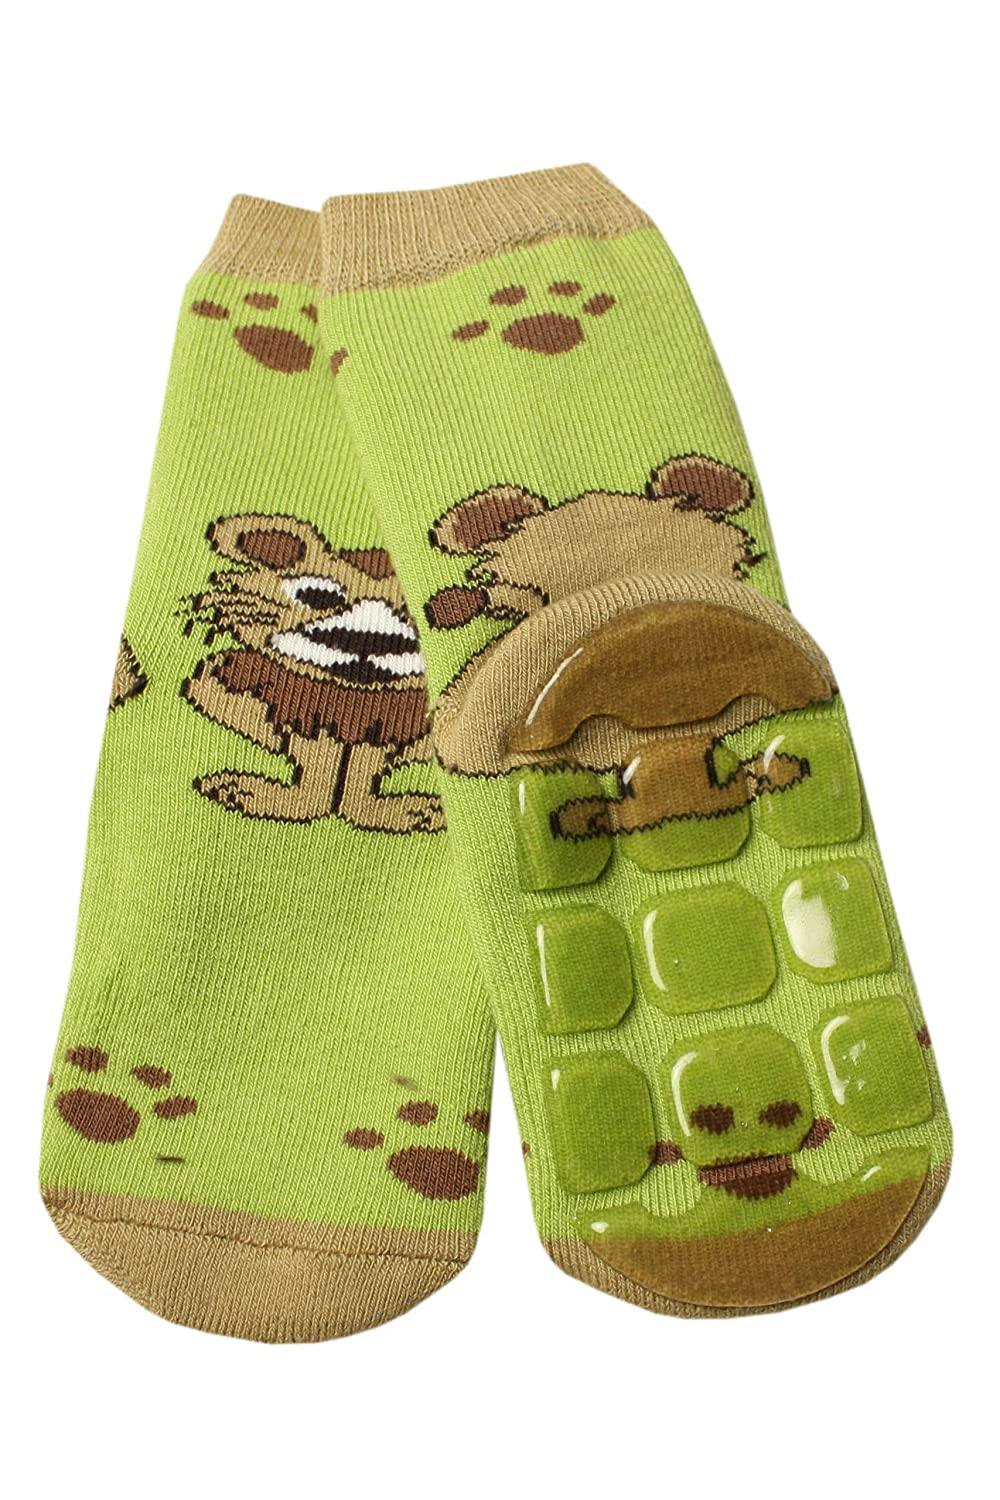 Weri Spezials Baby-Unisex Terry ABS Lionet Slippers Anti Non Slip Socks Green